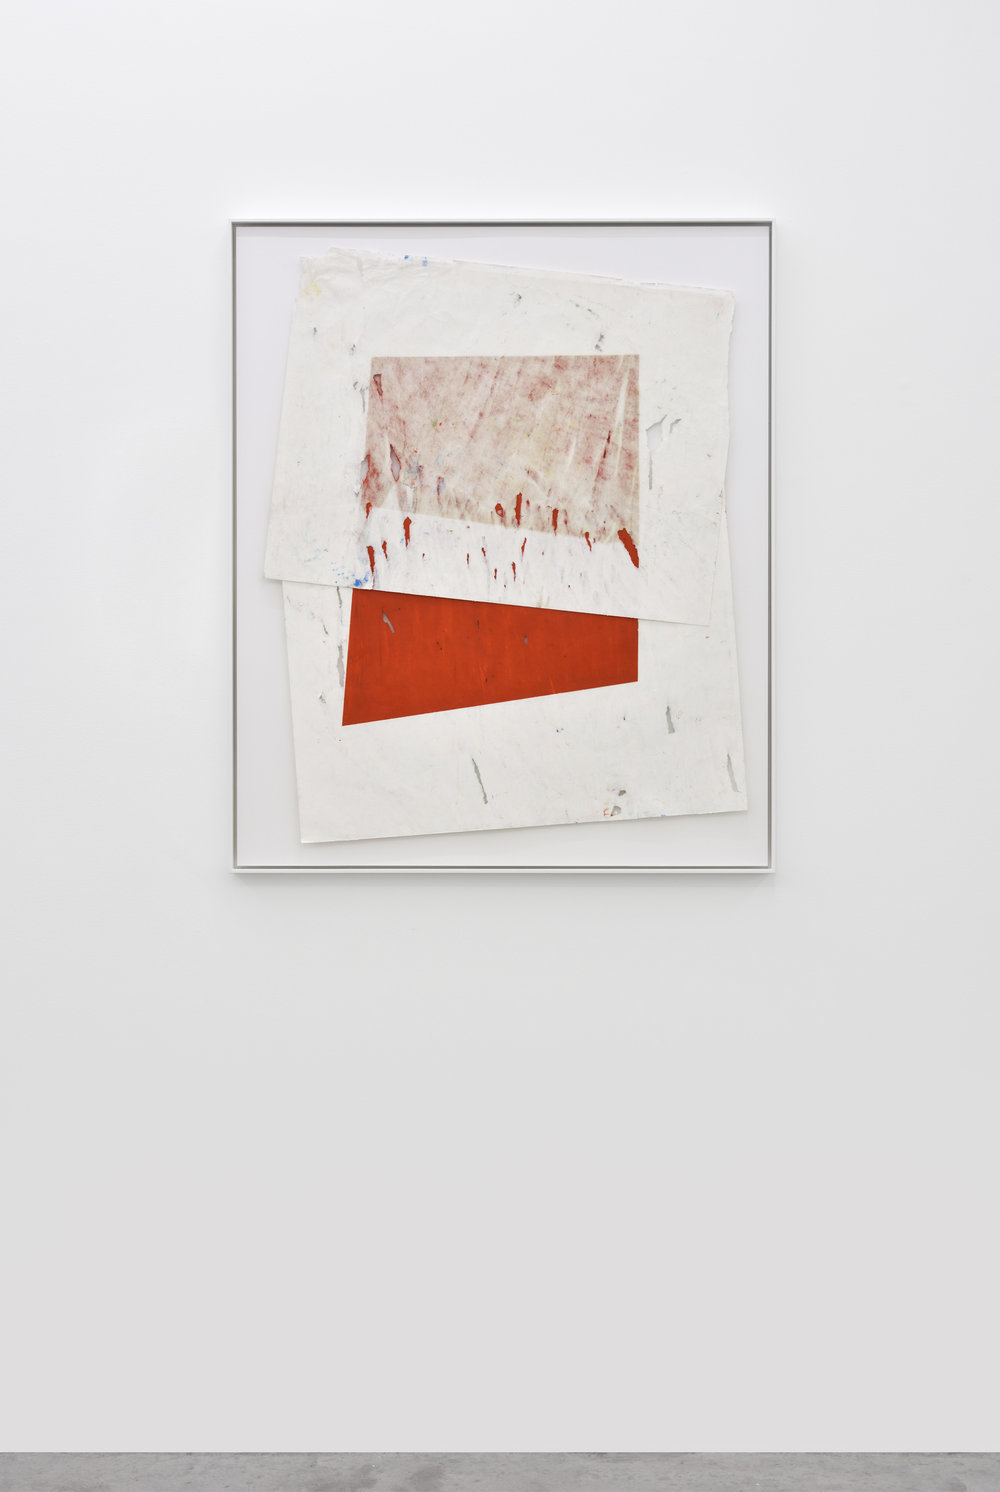 Vincent Chenut  Composition with one red rectangle , 2017 Oil sticks on paper 107 x 98 cm 42 1/8 x 38 19/32 inches